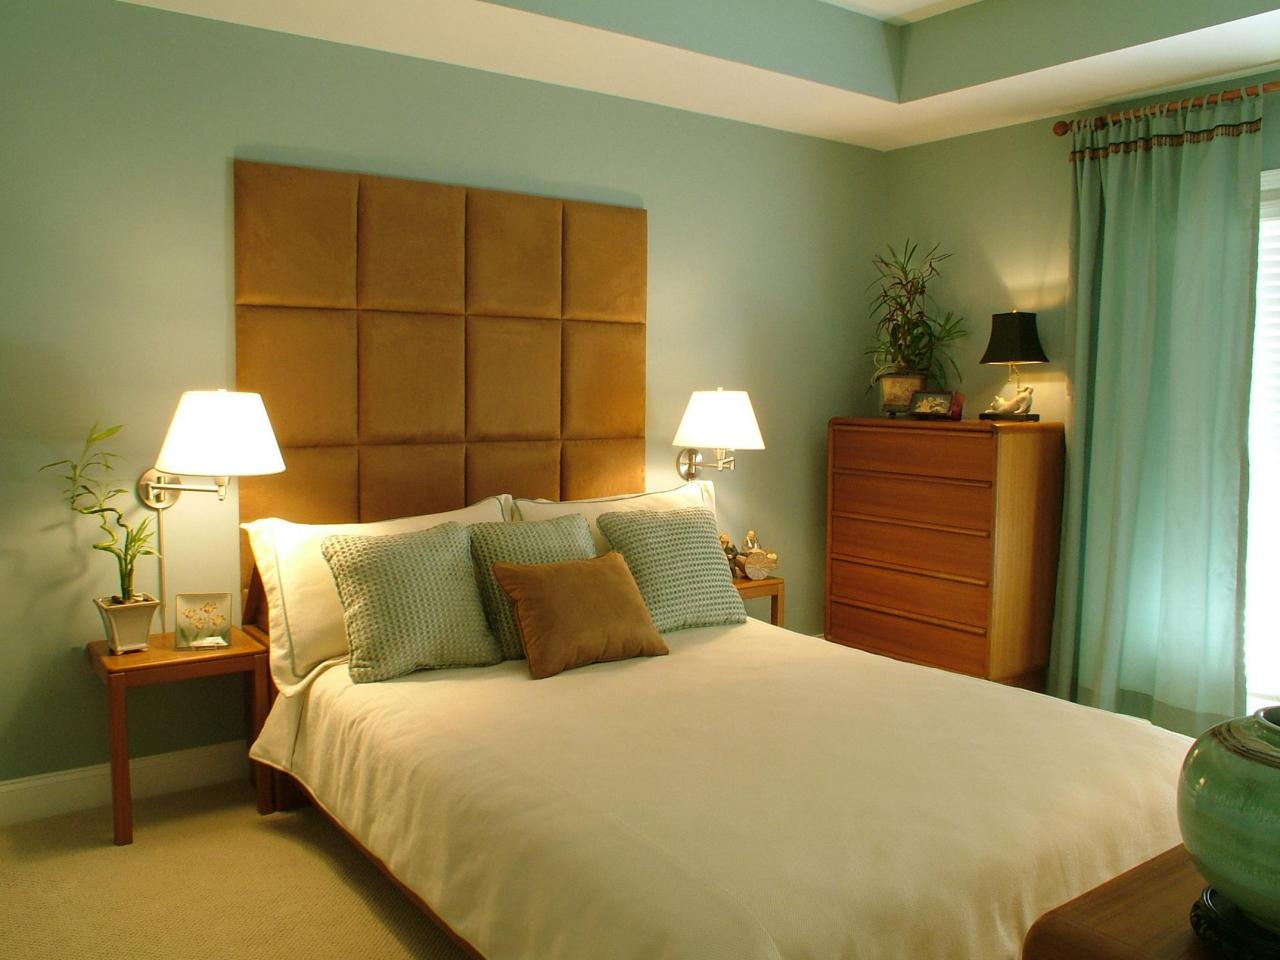 Small Bedroom Color bedroom wall color schemes: pictures, options & ideas | hgtv